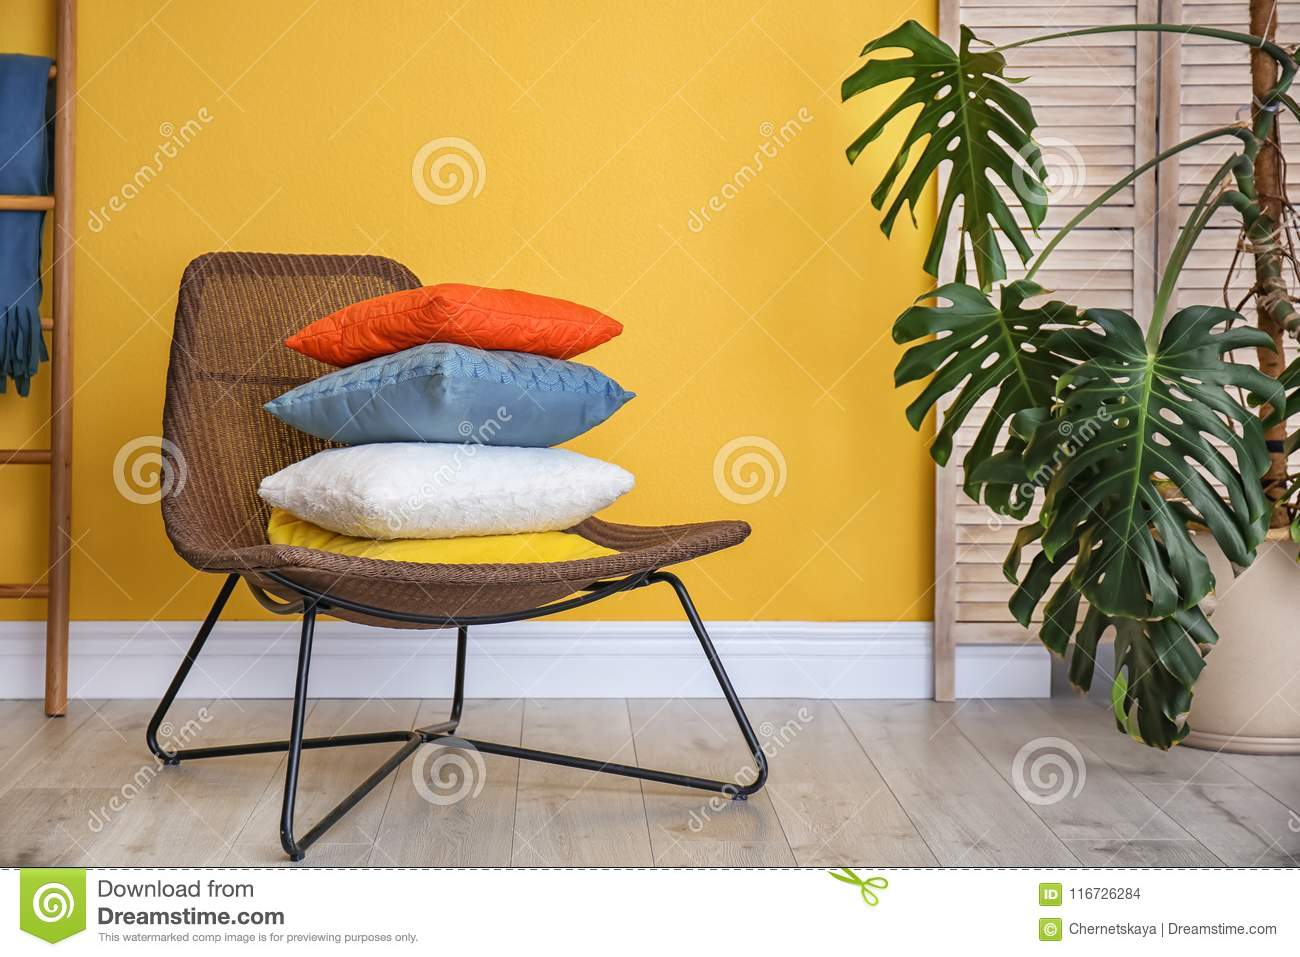 Armchair With Different Pillows Near Color Wall Stock Photo - Image ...